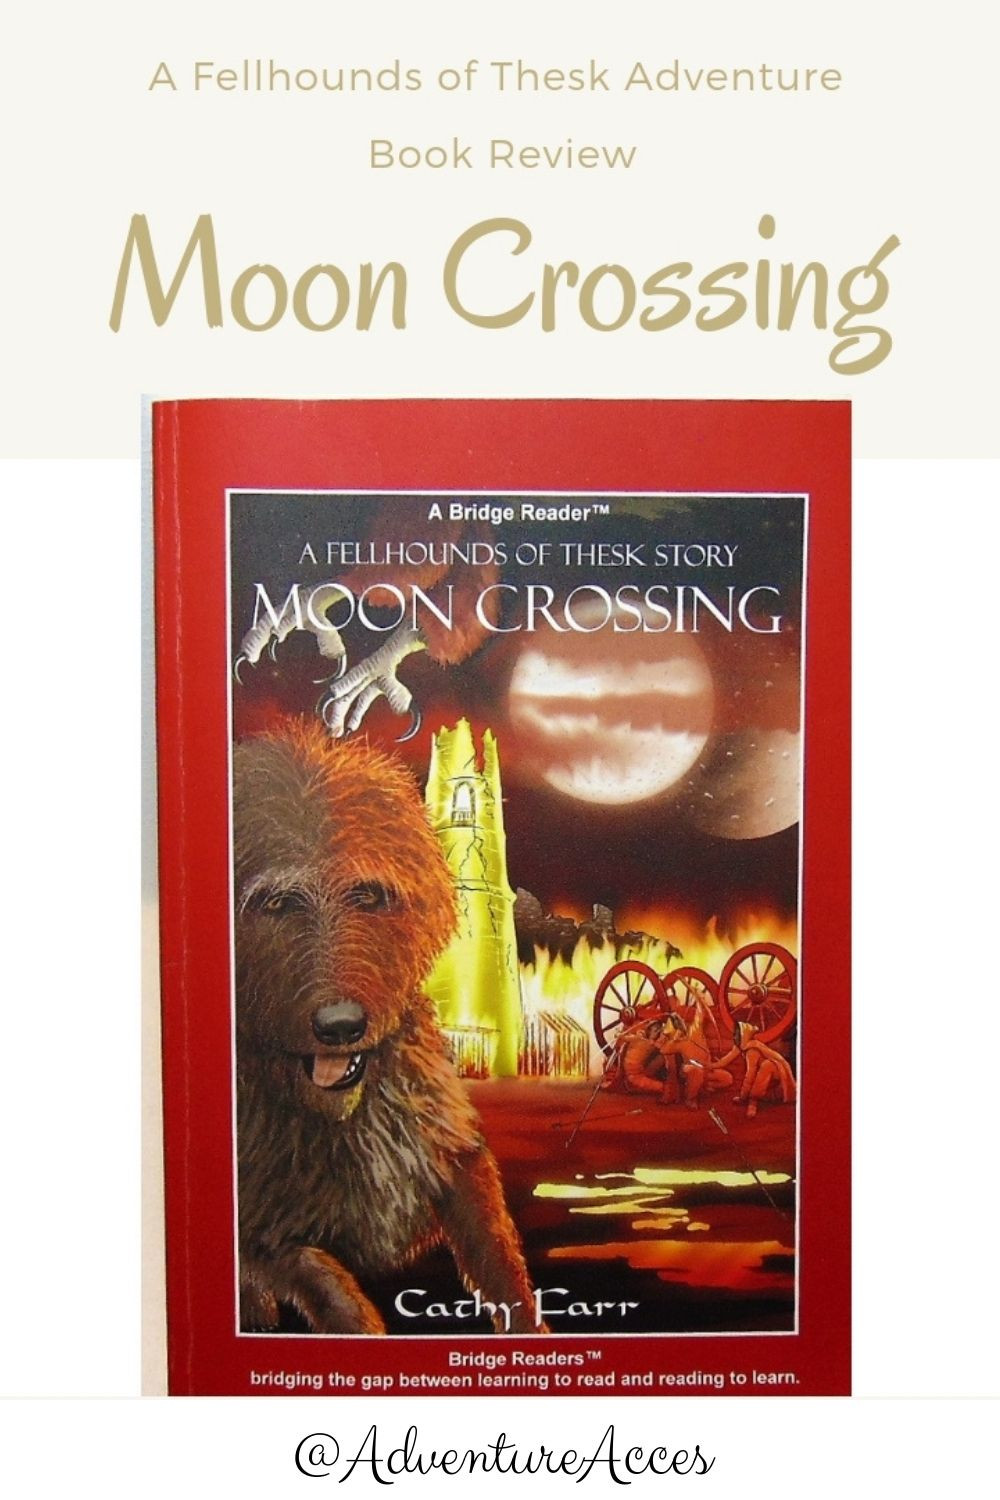 Moon Crossing book review for Pinterest by Adventure Accessories